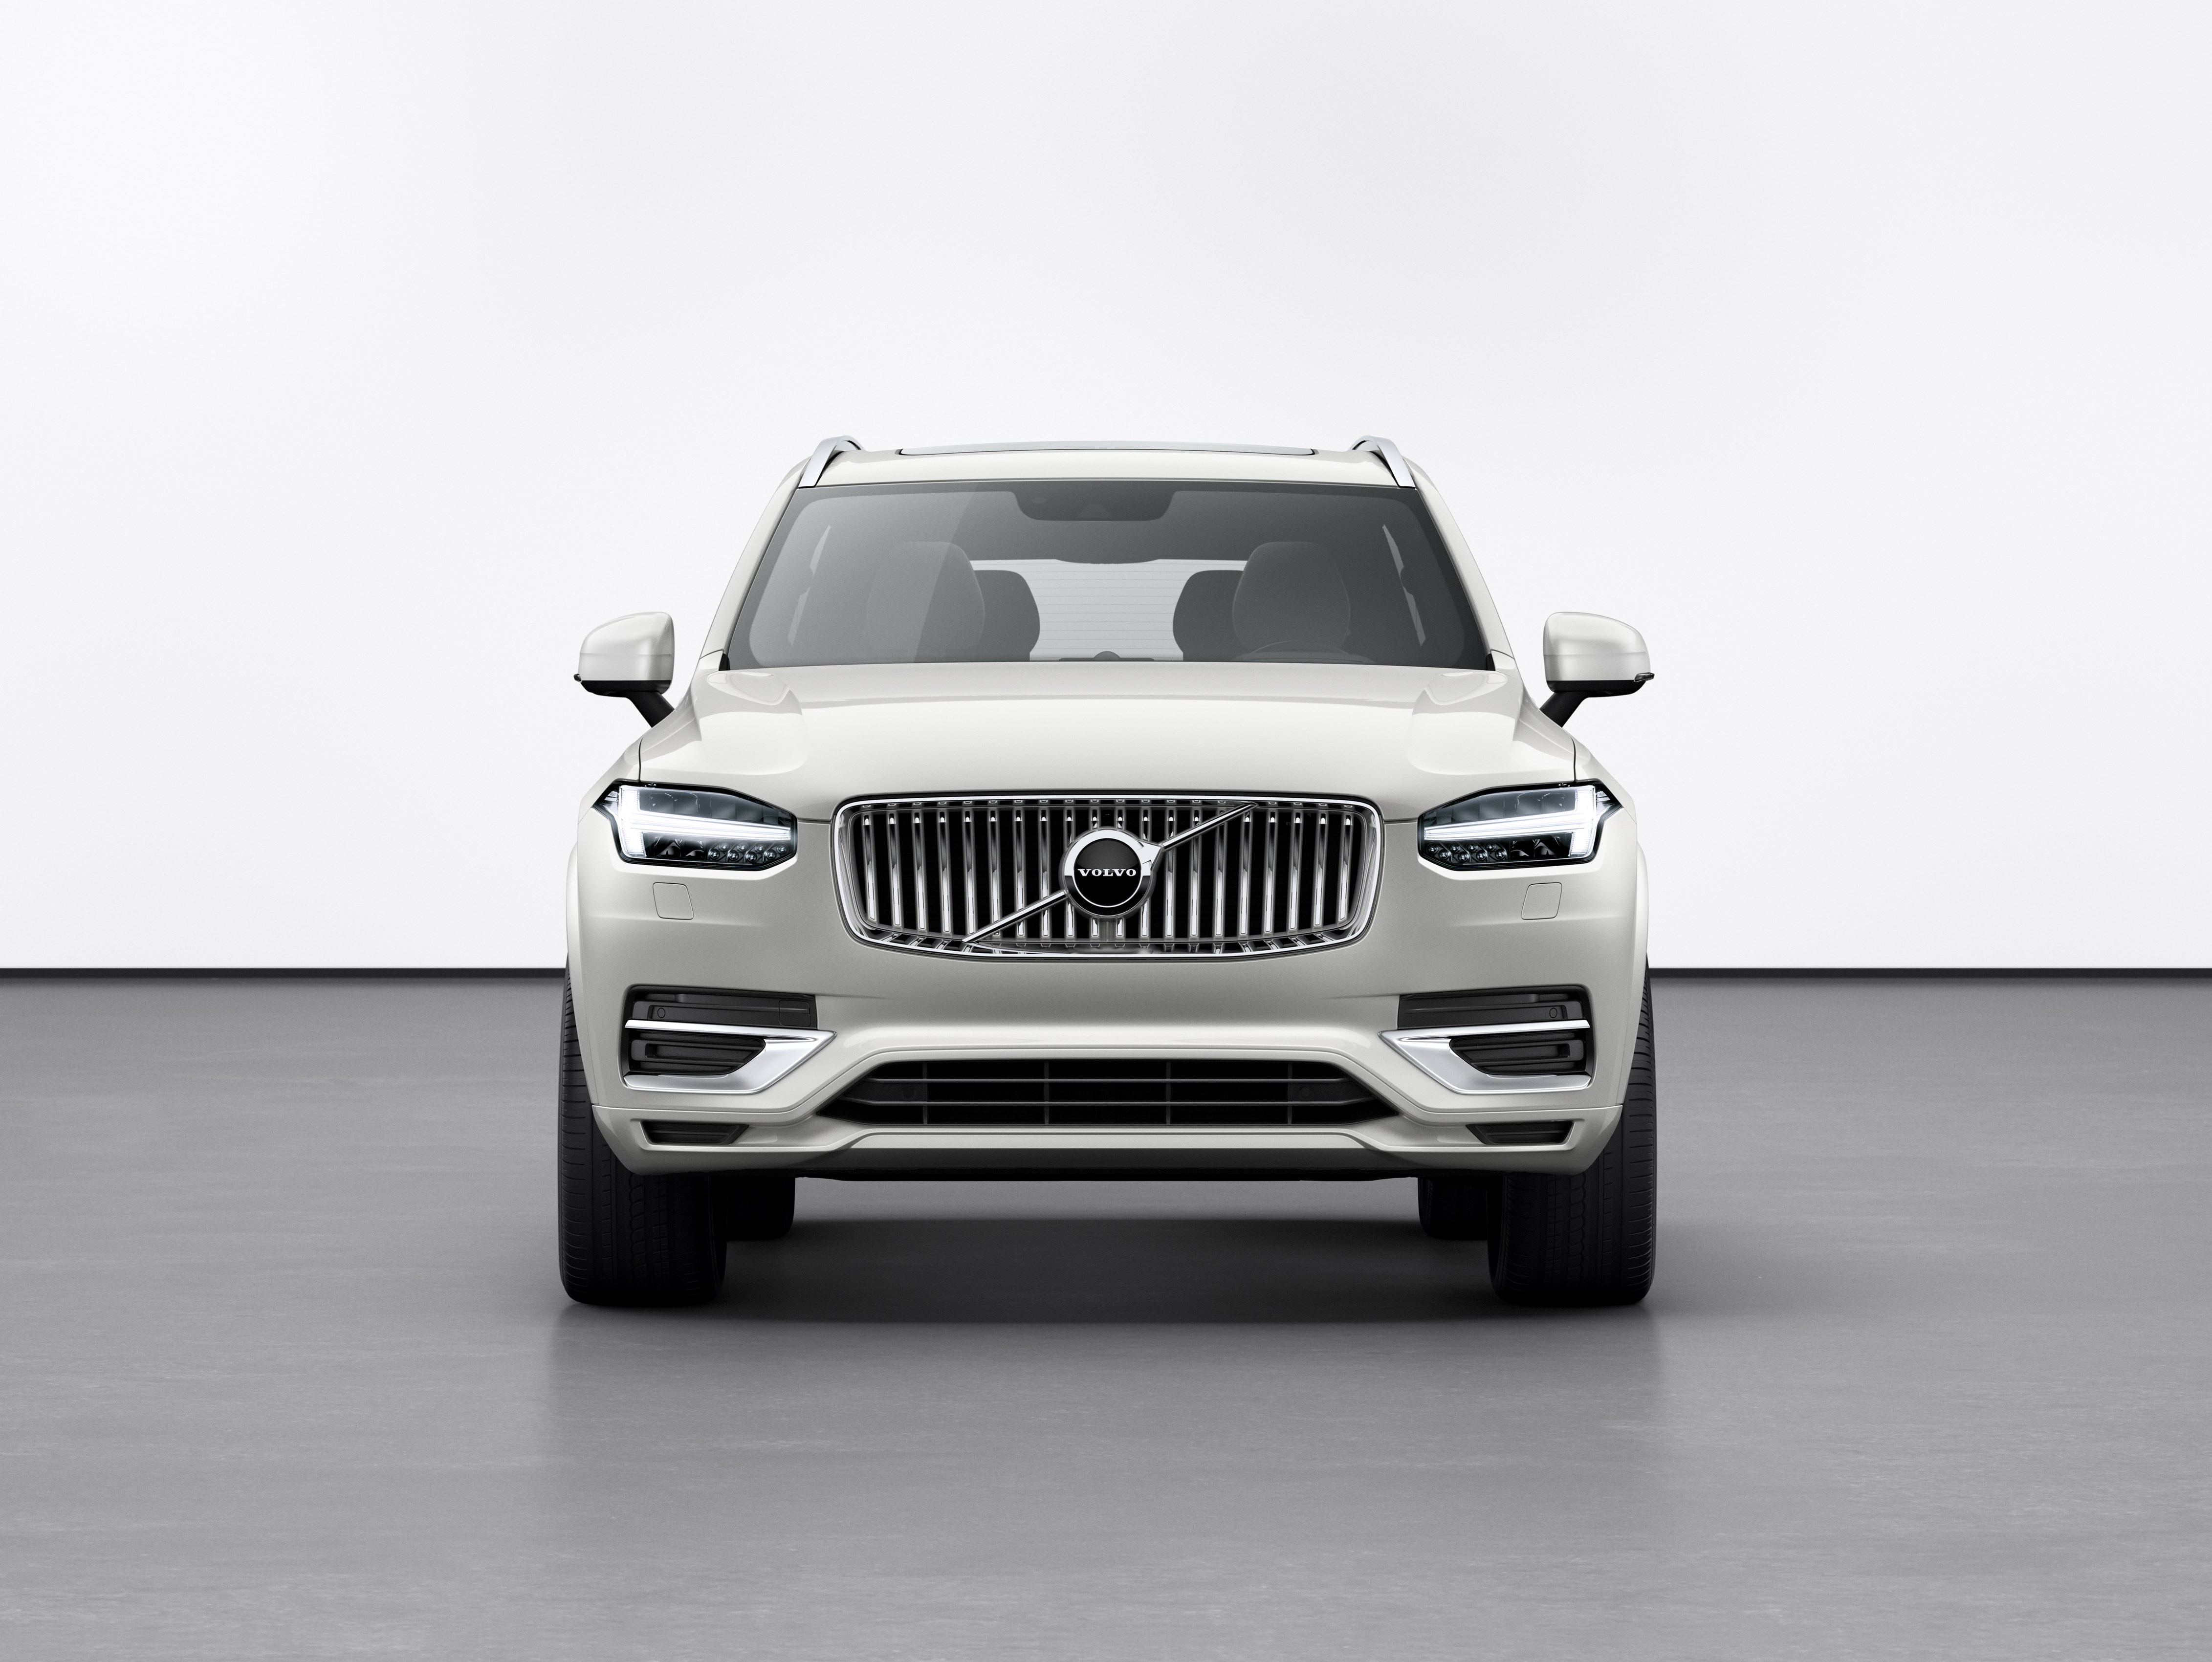 Refreshed Volvo XC90 Inscription T8 Twin Engine in Birch Light Metallic